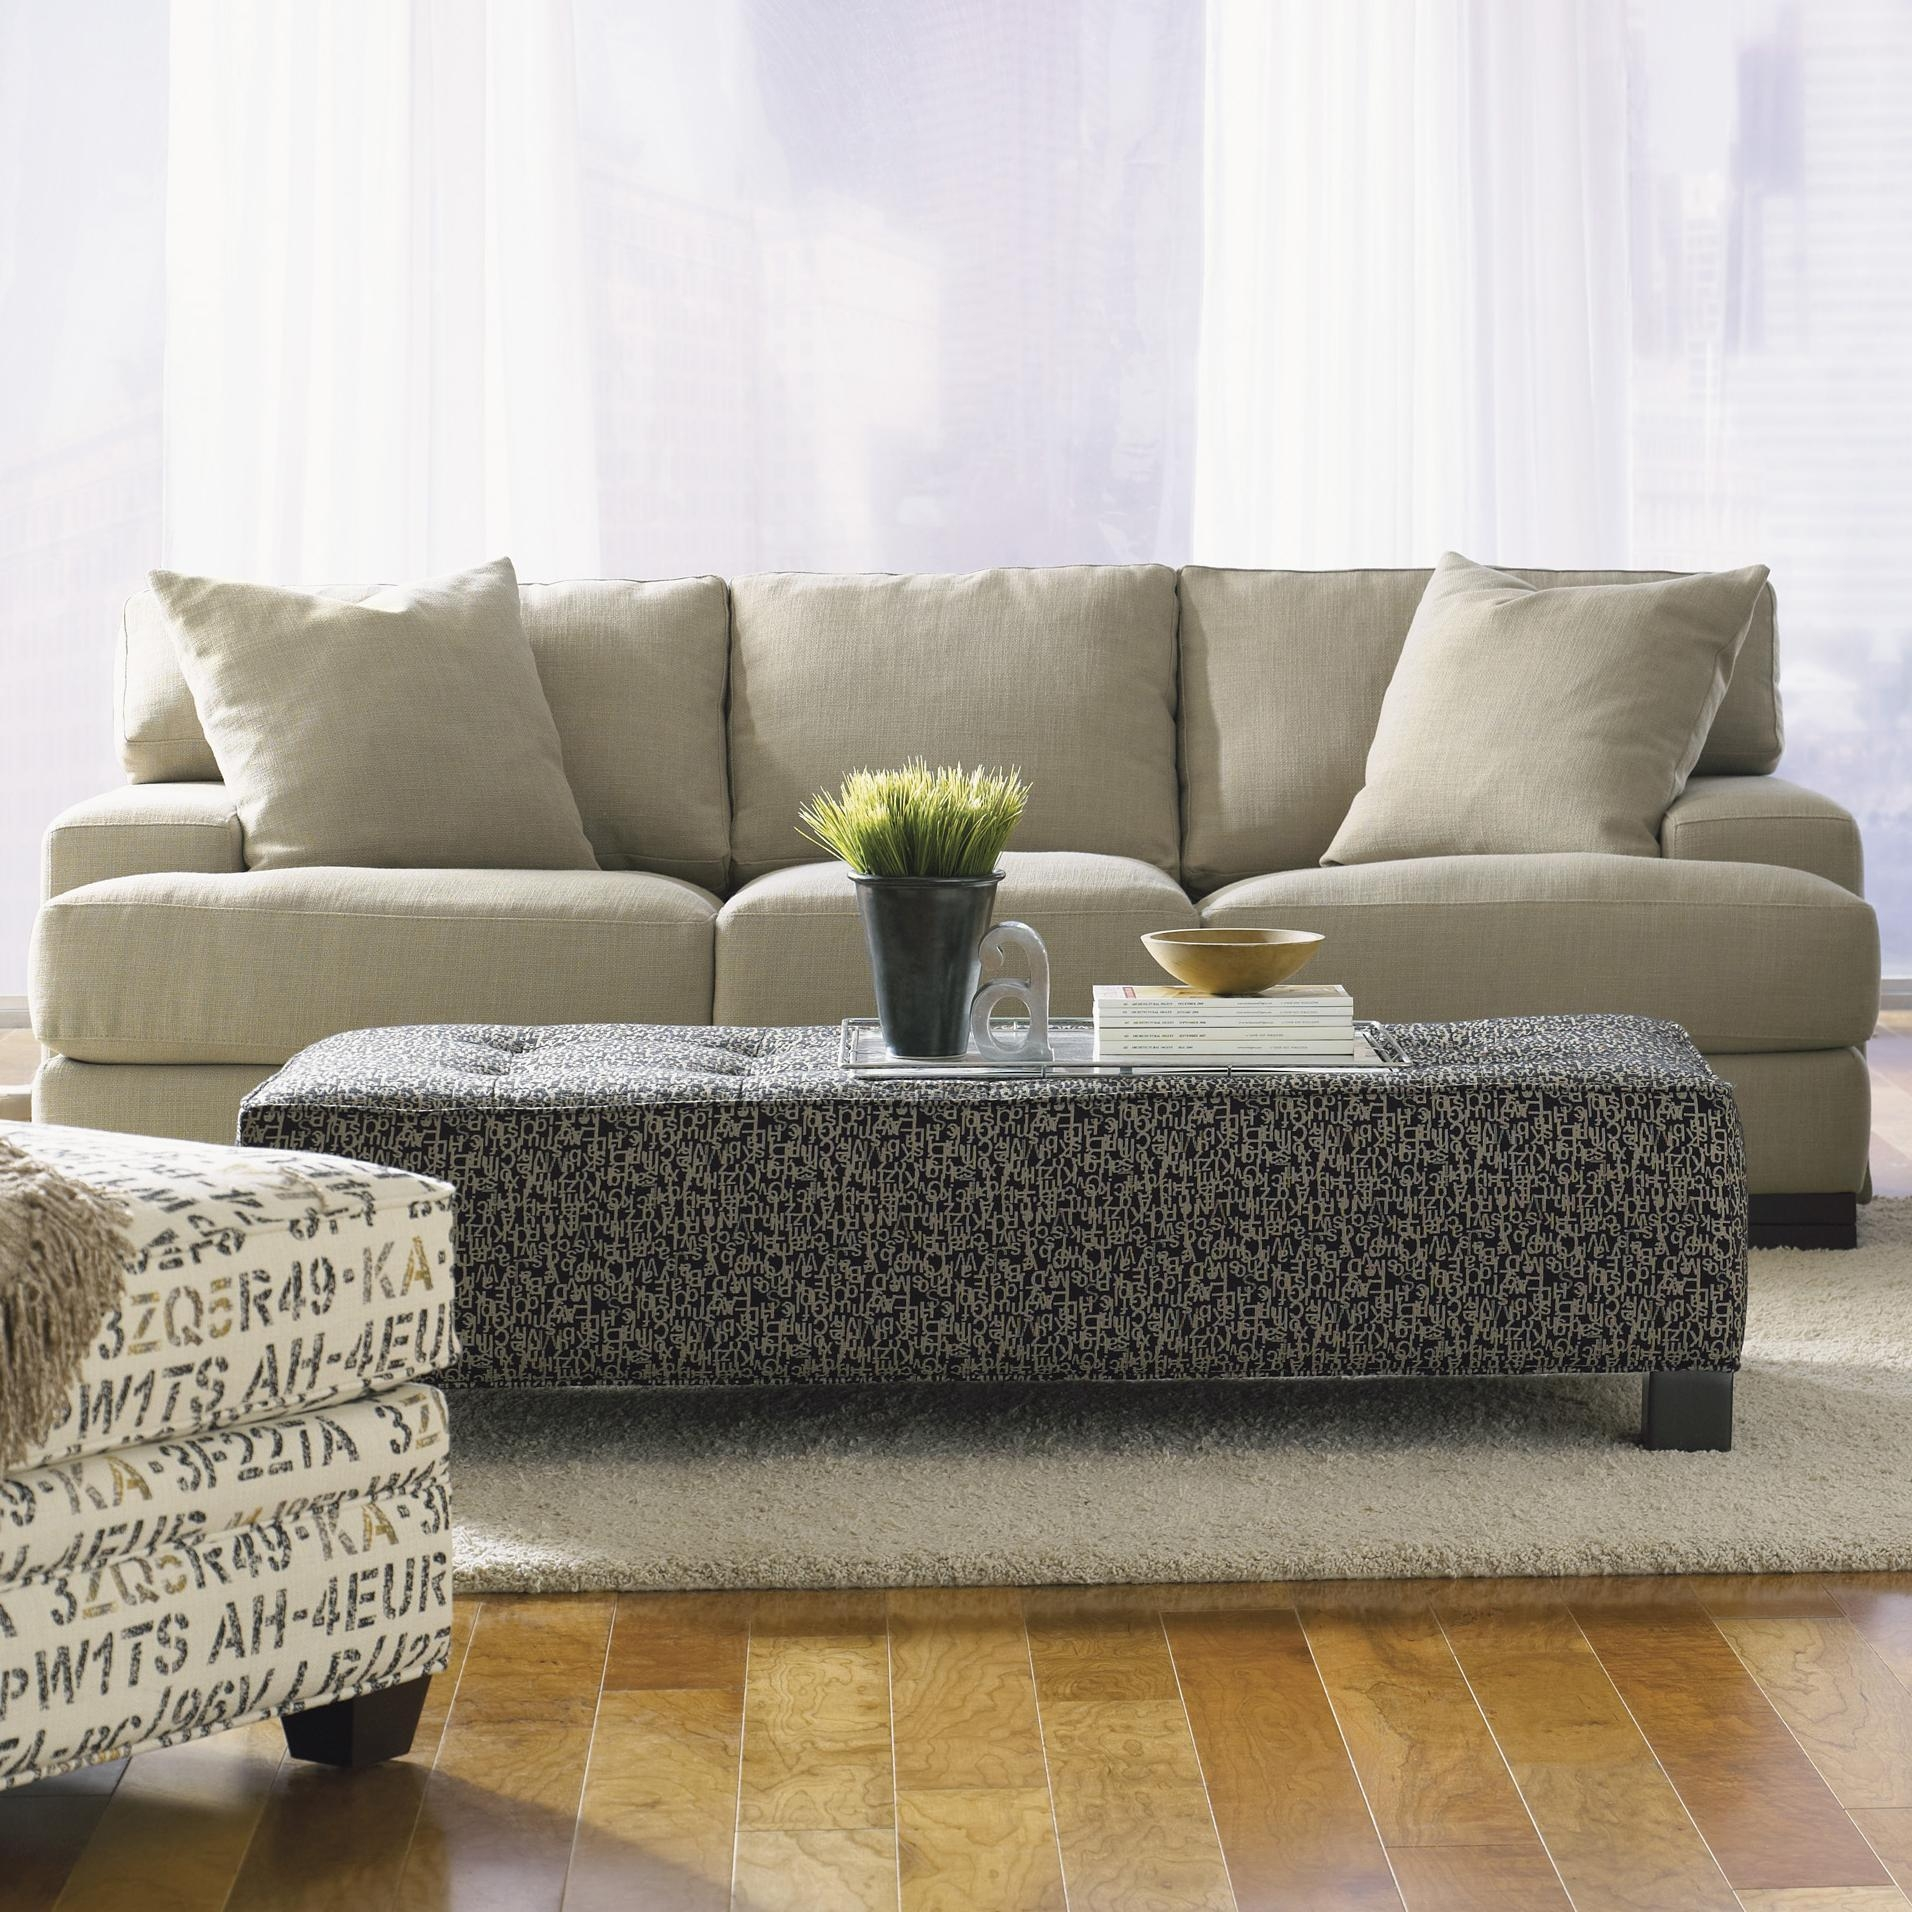 Connell's Furniture & Mattresses » Living Room For Jonathan Sofa (Image 5 of 20)